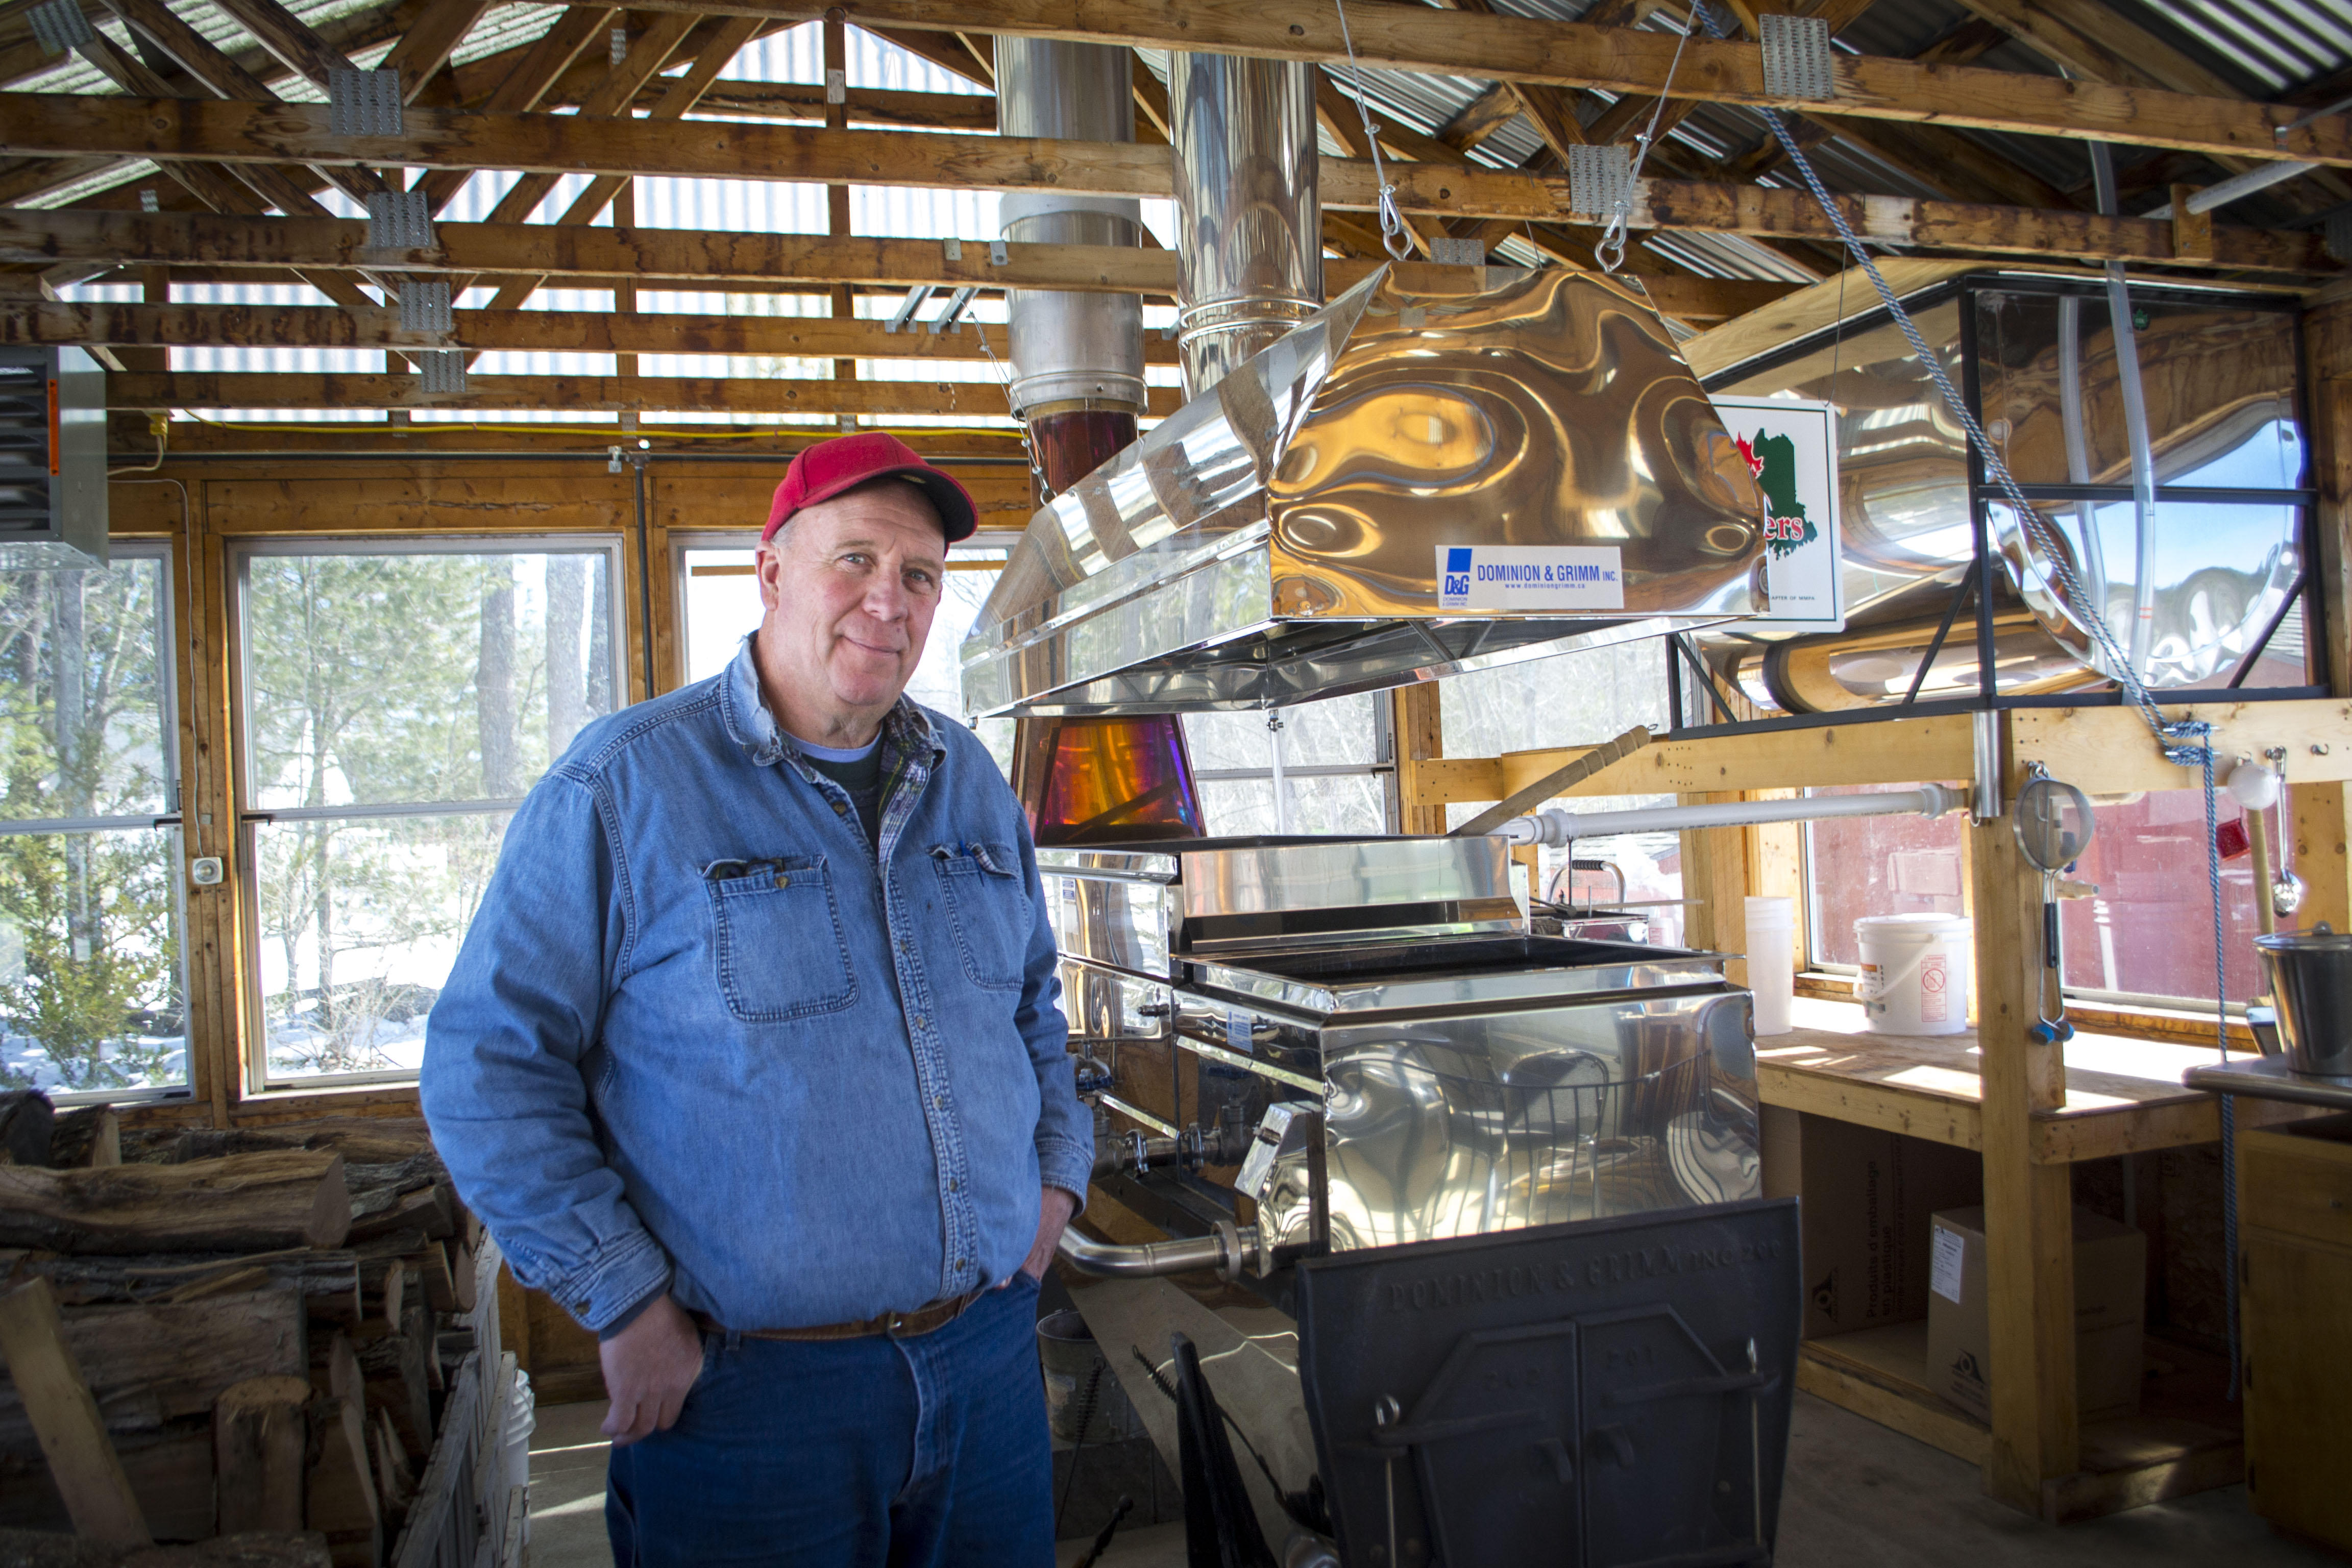 Rick Chase, of Chase Farms in Wells, stands next to his family's wood-fired maple sap evaporator on Thursday. ALAN BENNETT/Journal Tribune